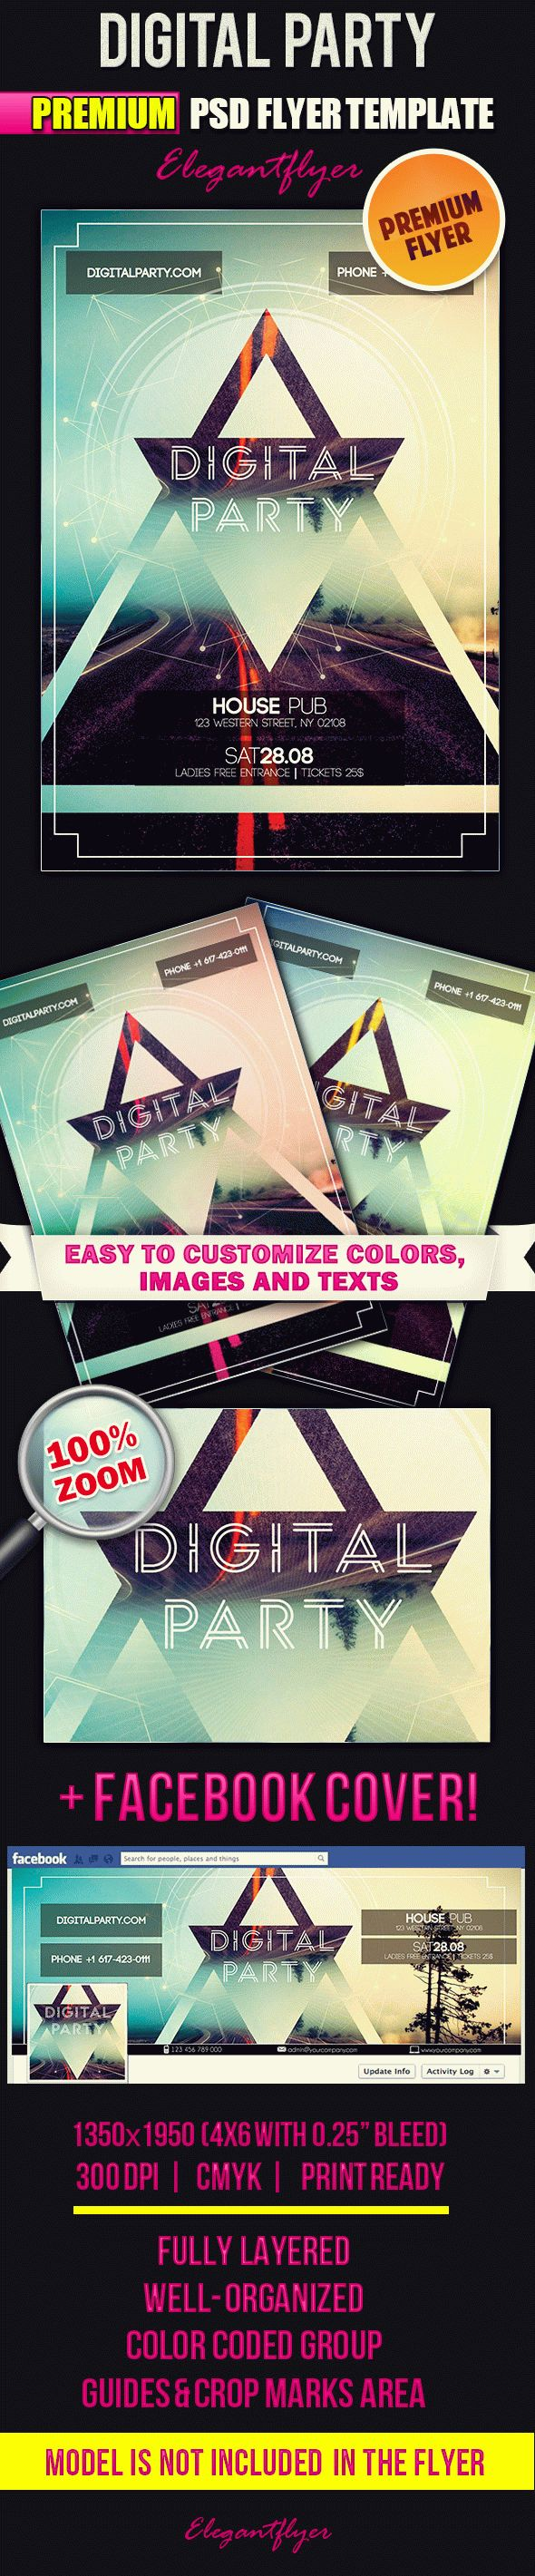 Digital Flyer Templates | Bigpreview Digital Party flyer psd template facebook cover